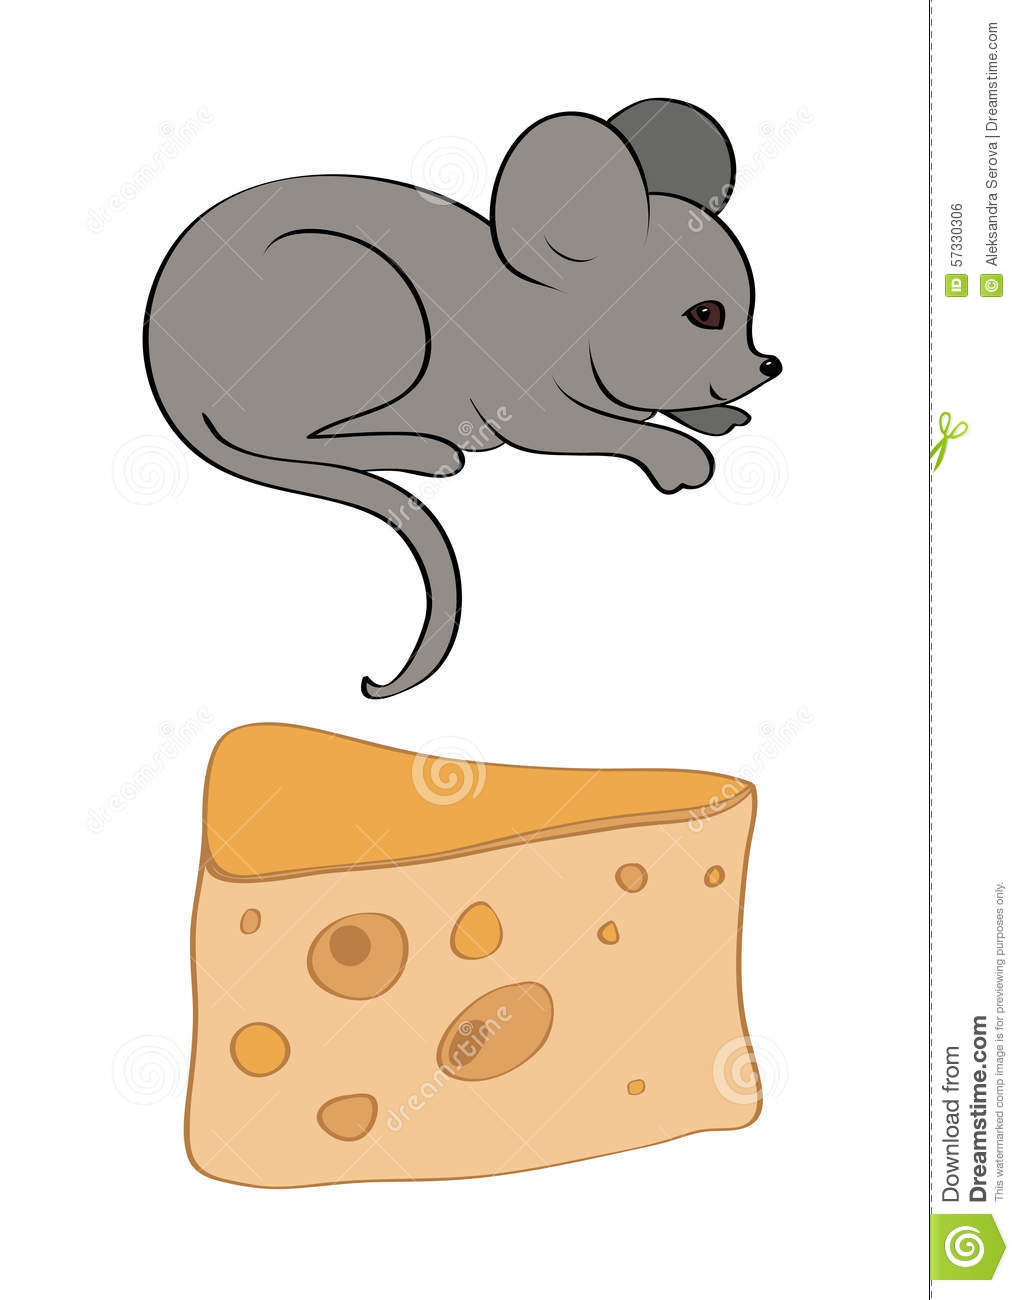 Mouse holes on garden lawn royalty free stock image for Field mouse cartoon